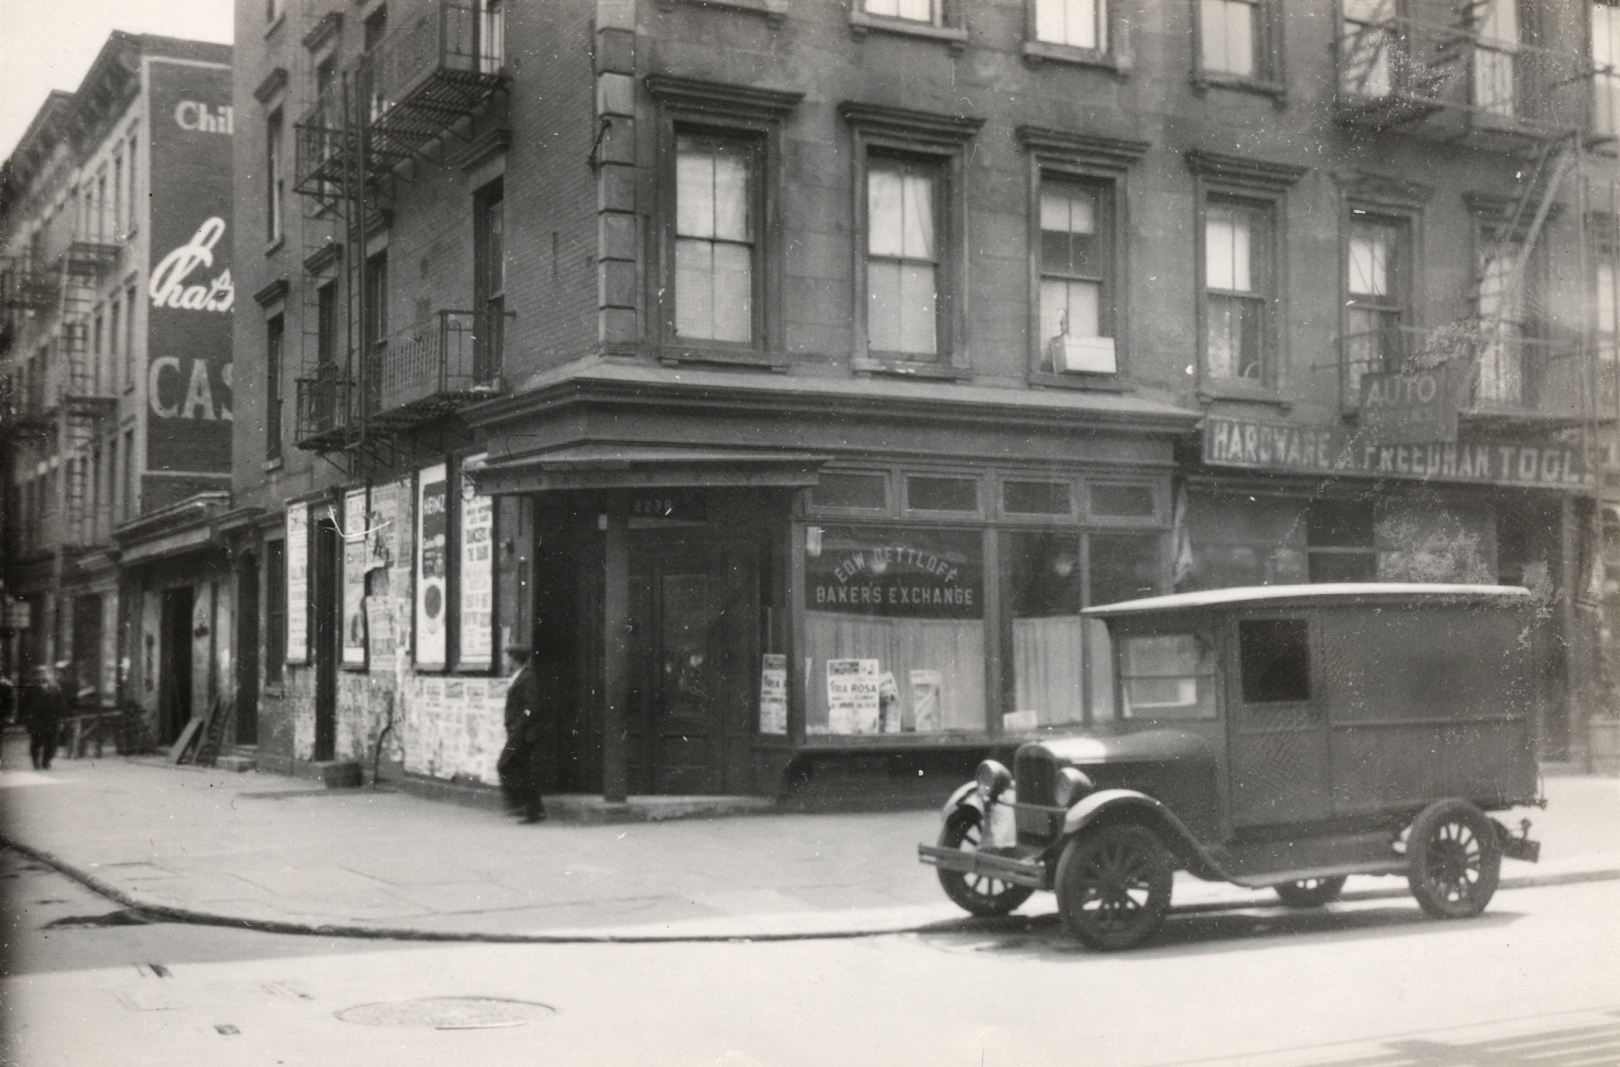 An April 13, 1932 raid on a speakeasy at 115th St. and Second Ave. housed in a store called Baker's Exchange. NYC Municipal Archives.